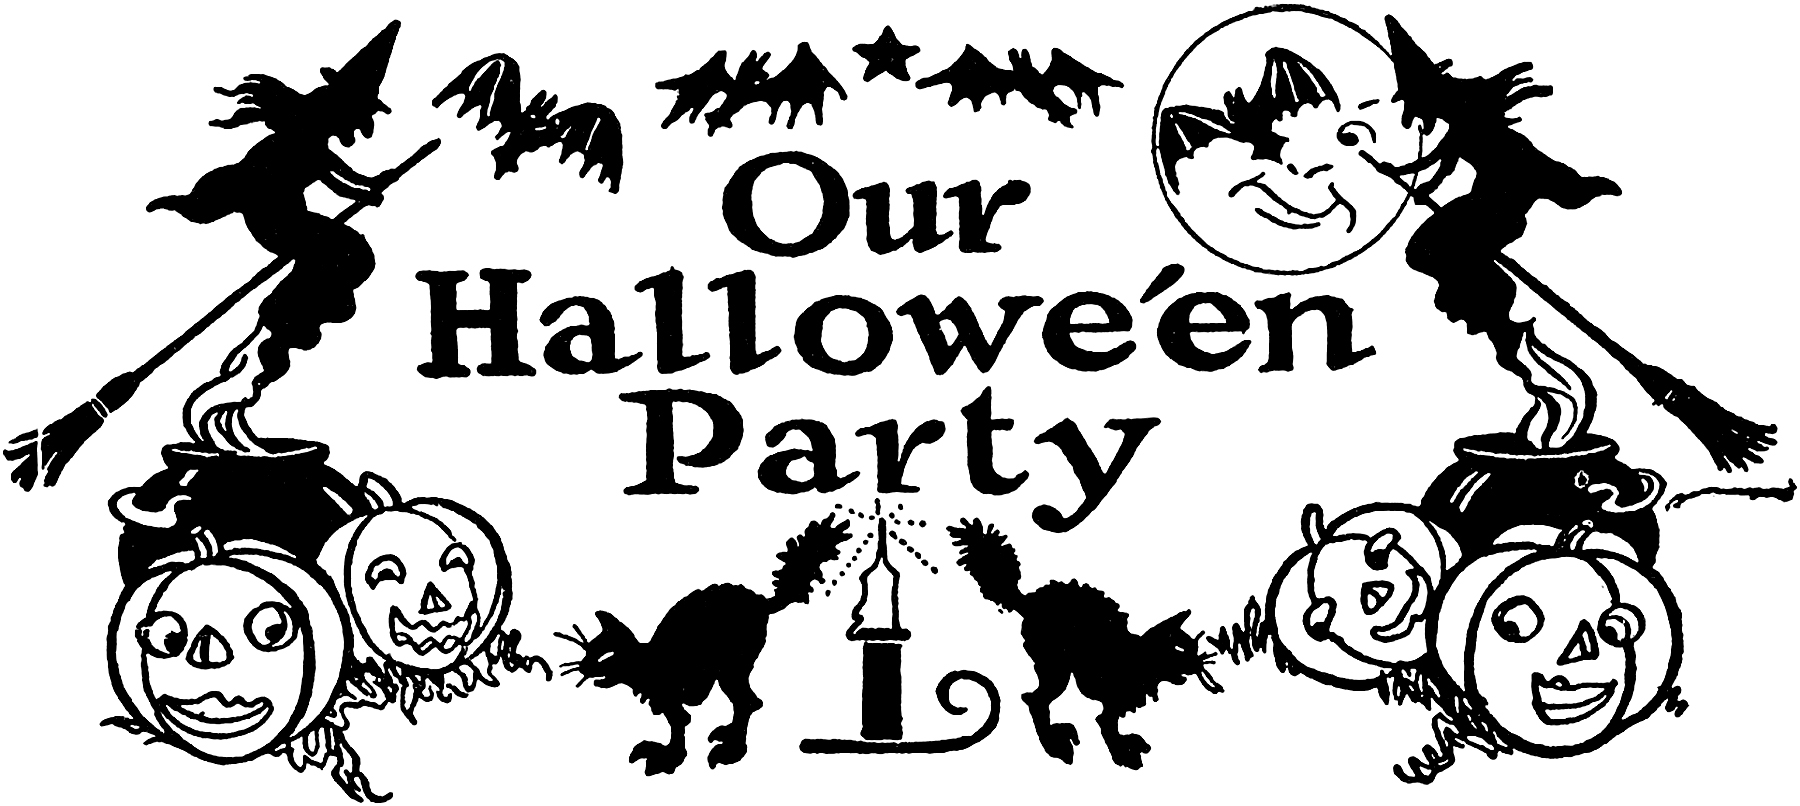 Nostalgic Black And White Halloween Party Clip Art